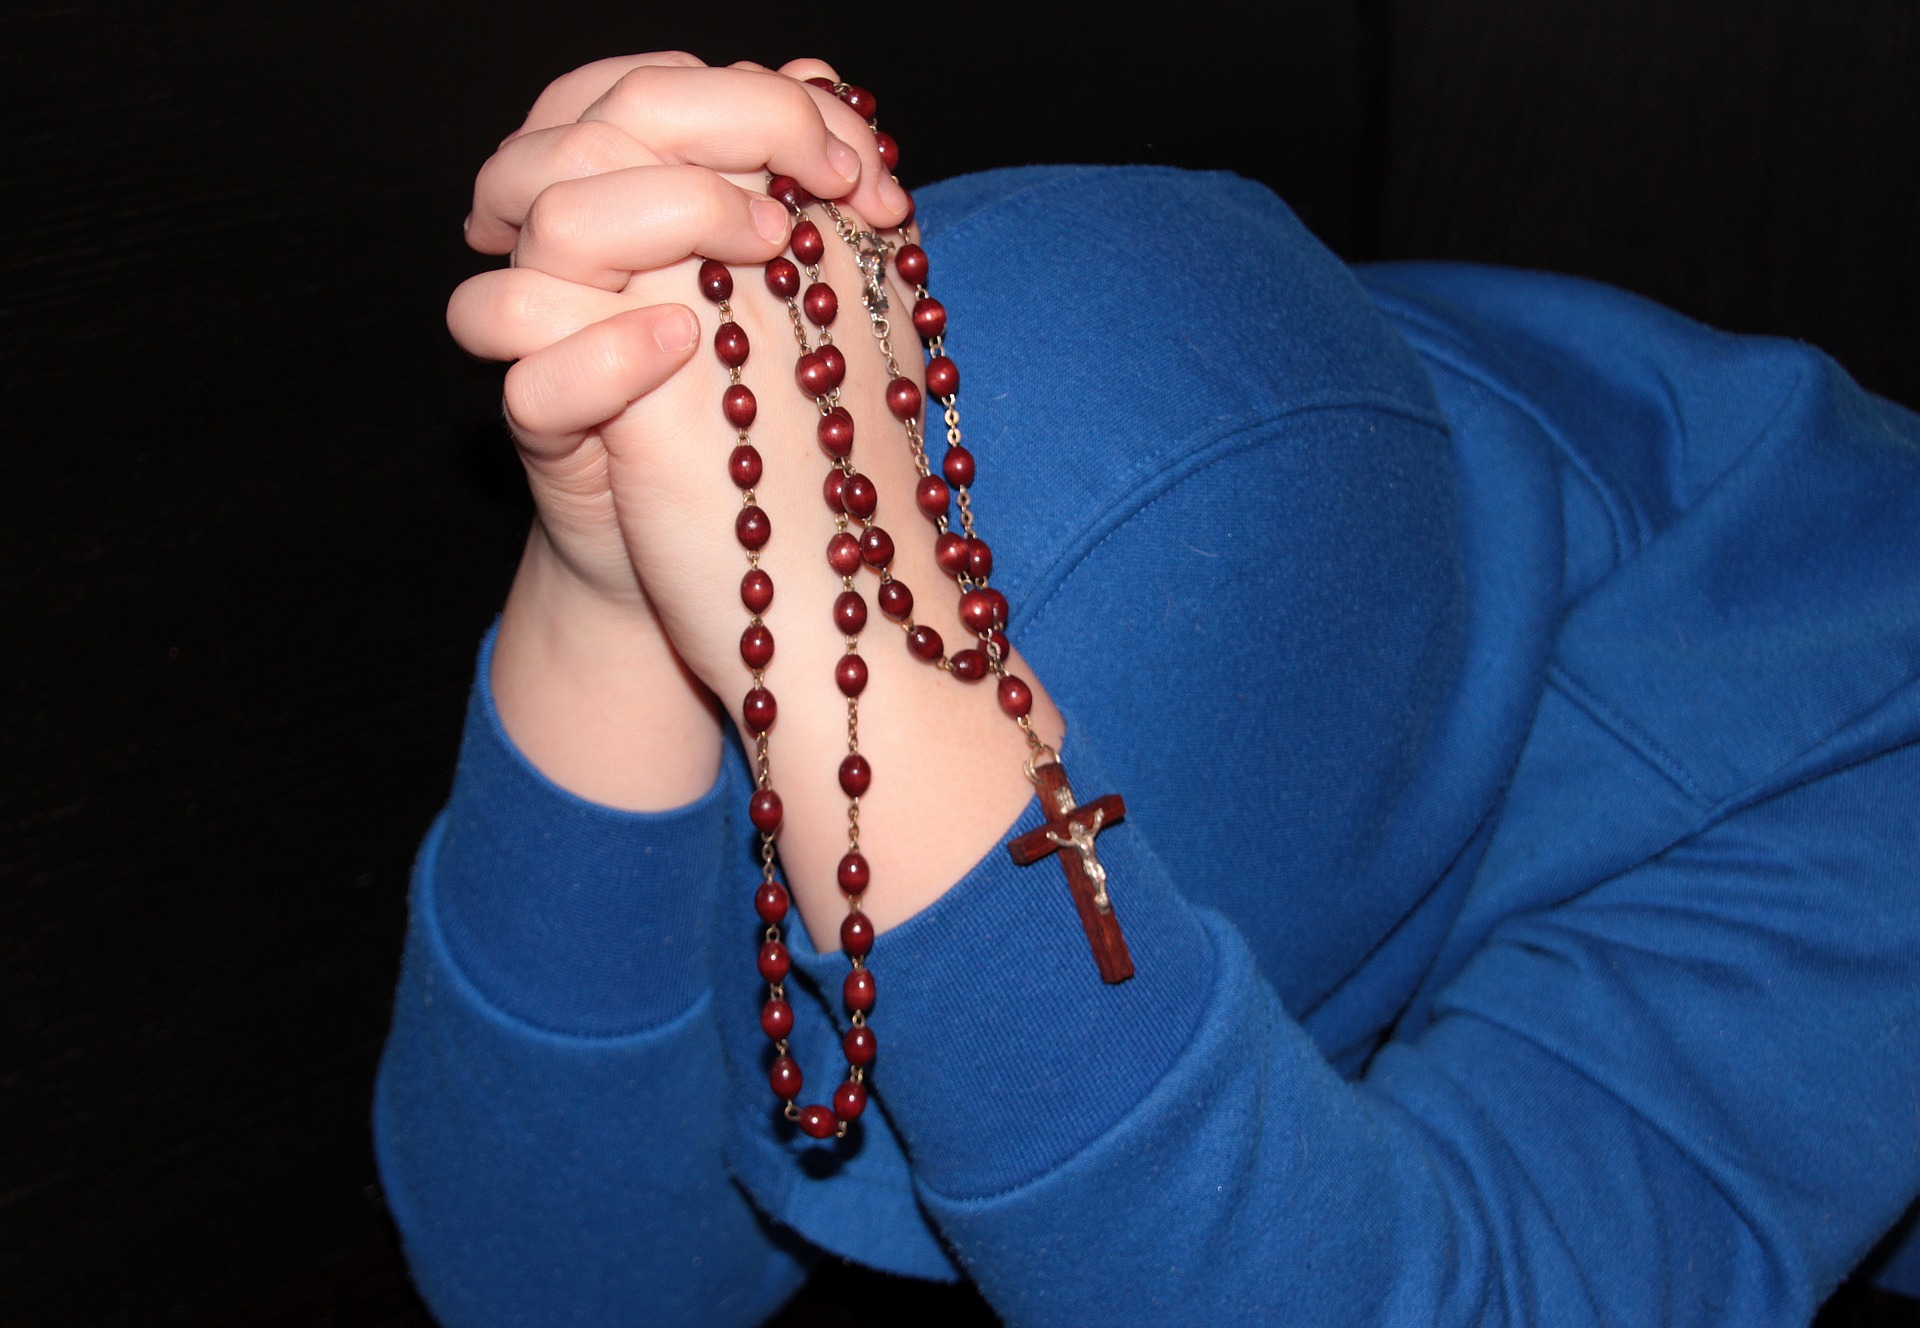 Holding string of beads - praying photo